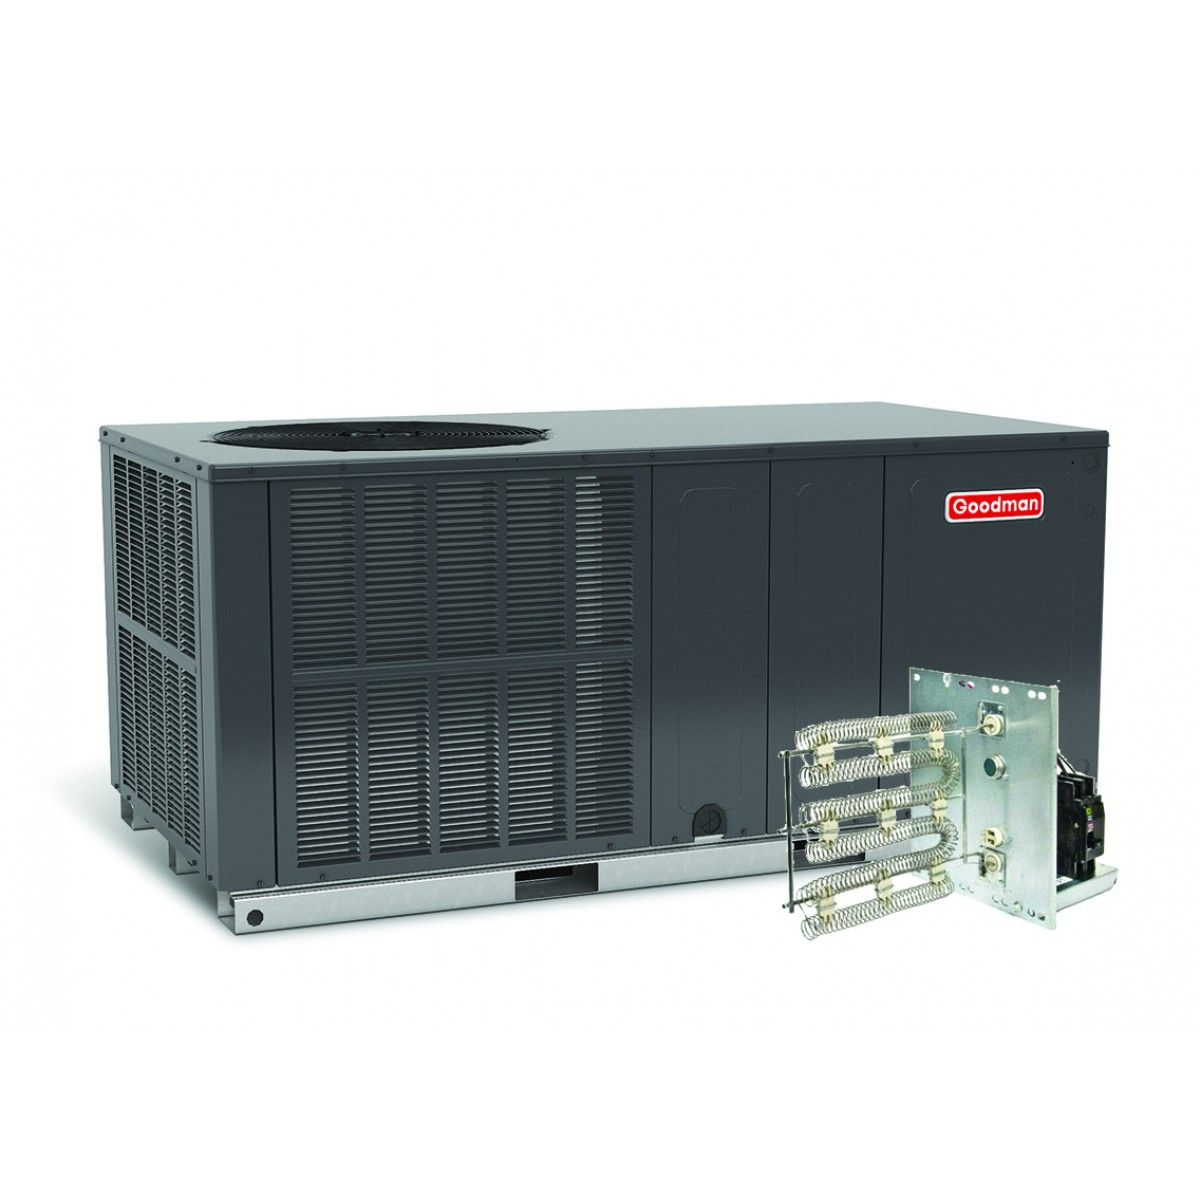 Goodman 3 0 Ton 14 Seer Heat Pump Package Unit Horizontal